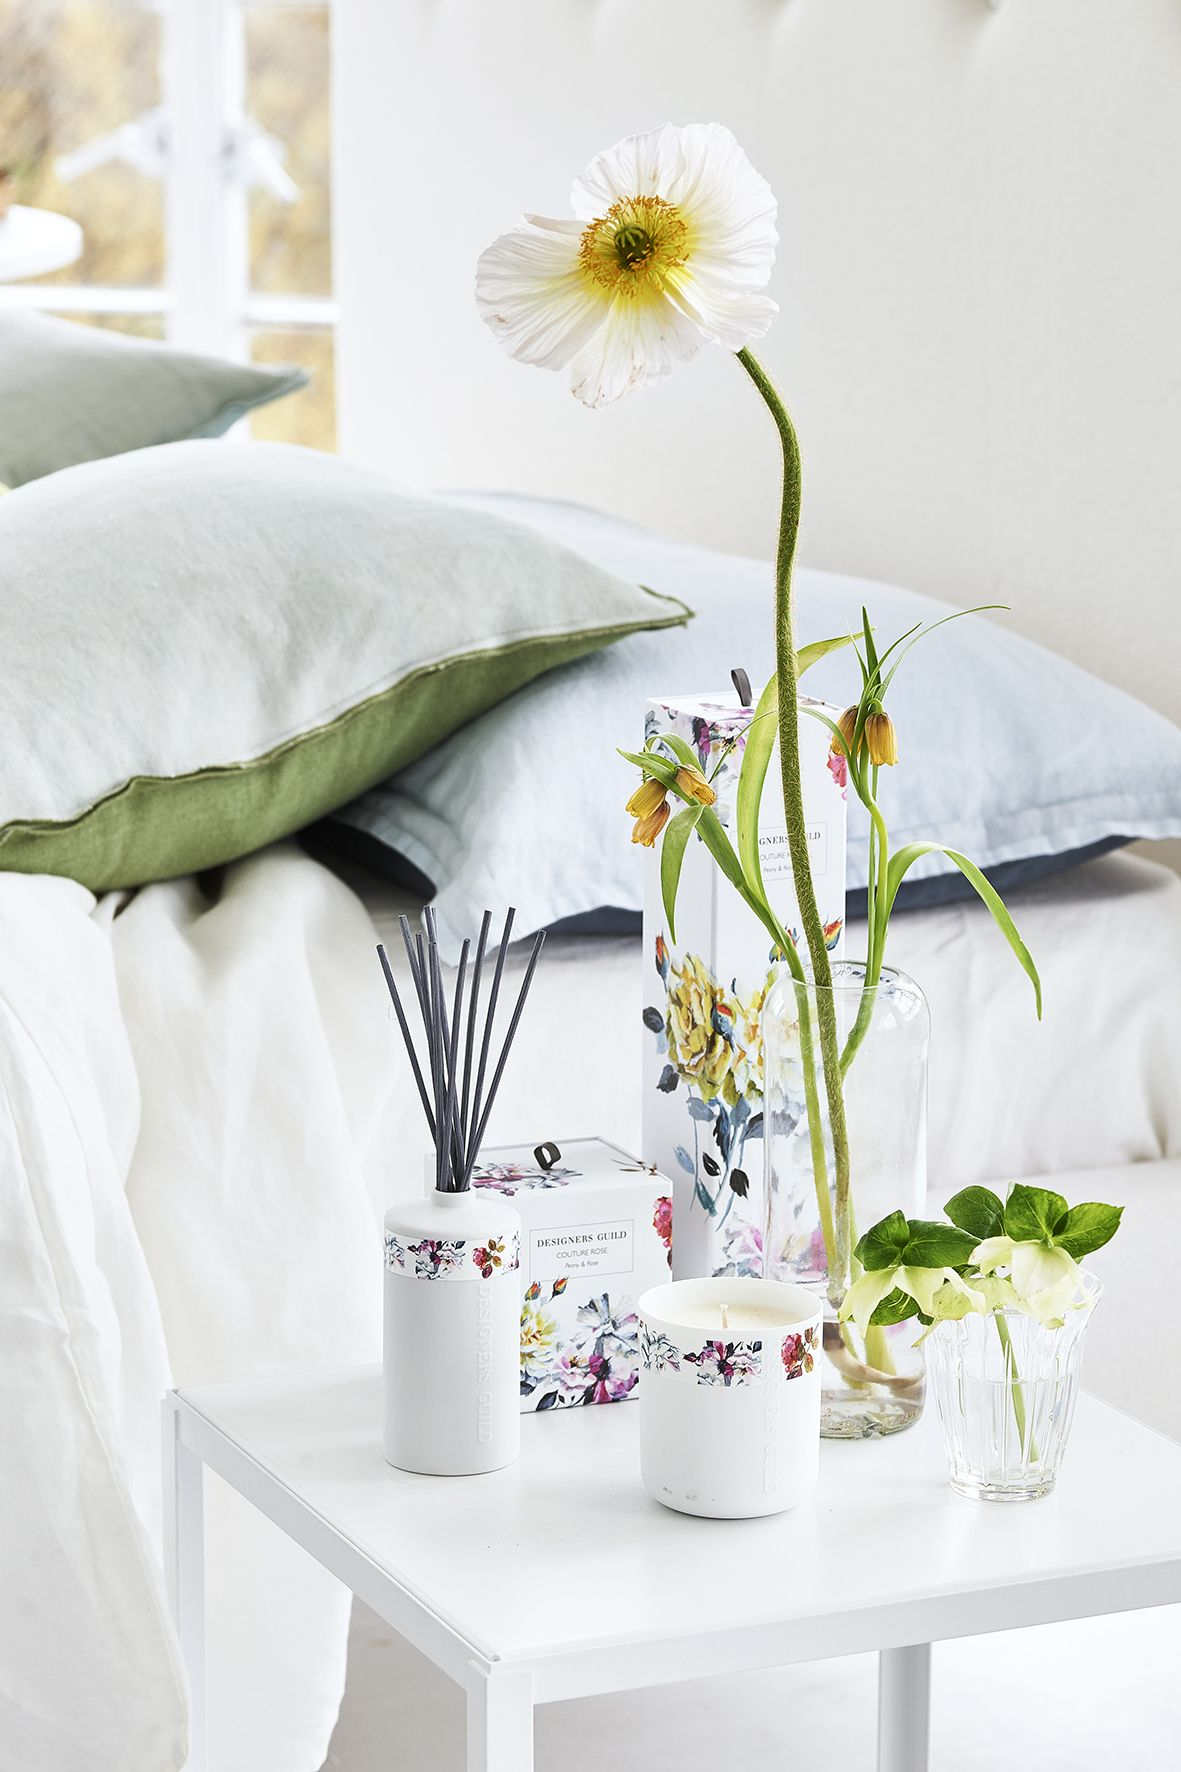 Couture rose home fragrance collection   Designers Guild   Summer ...